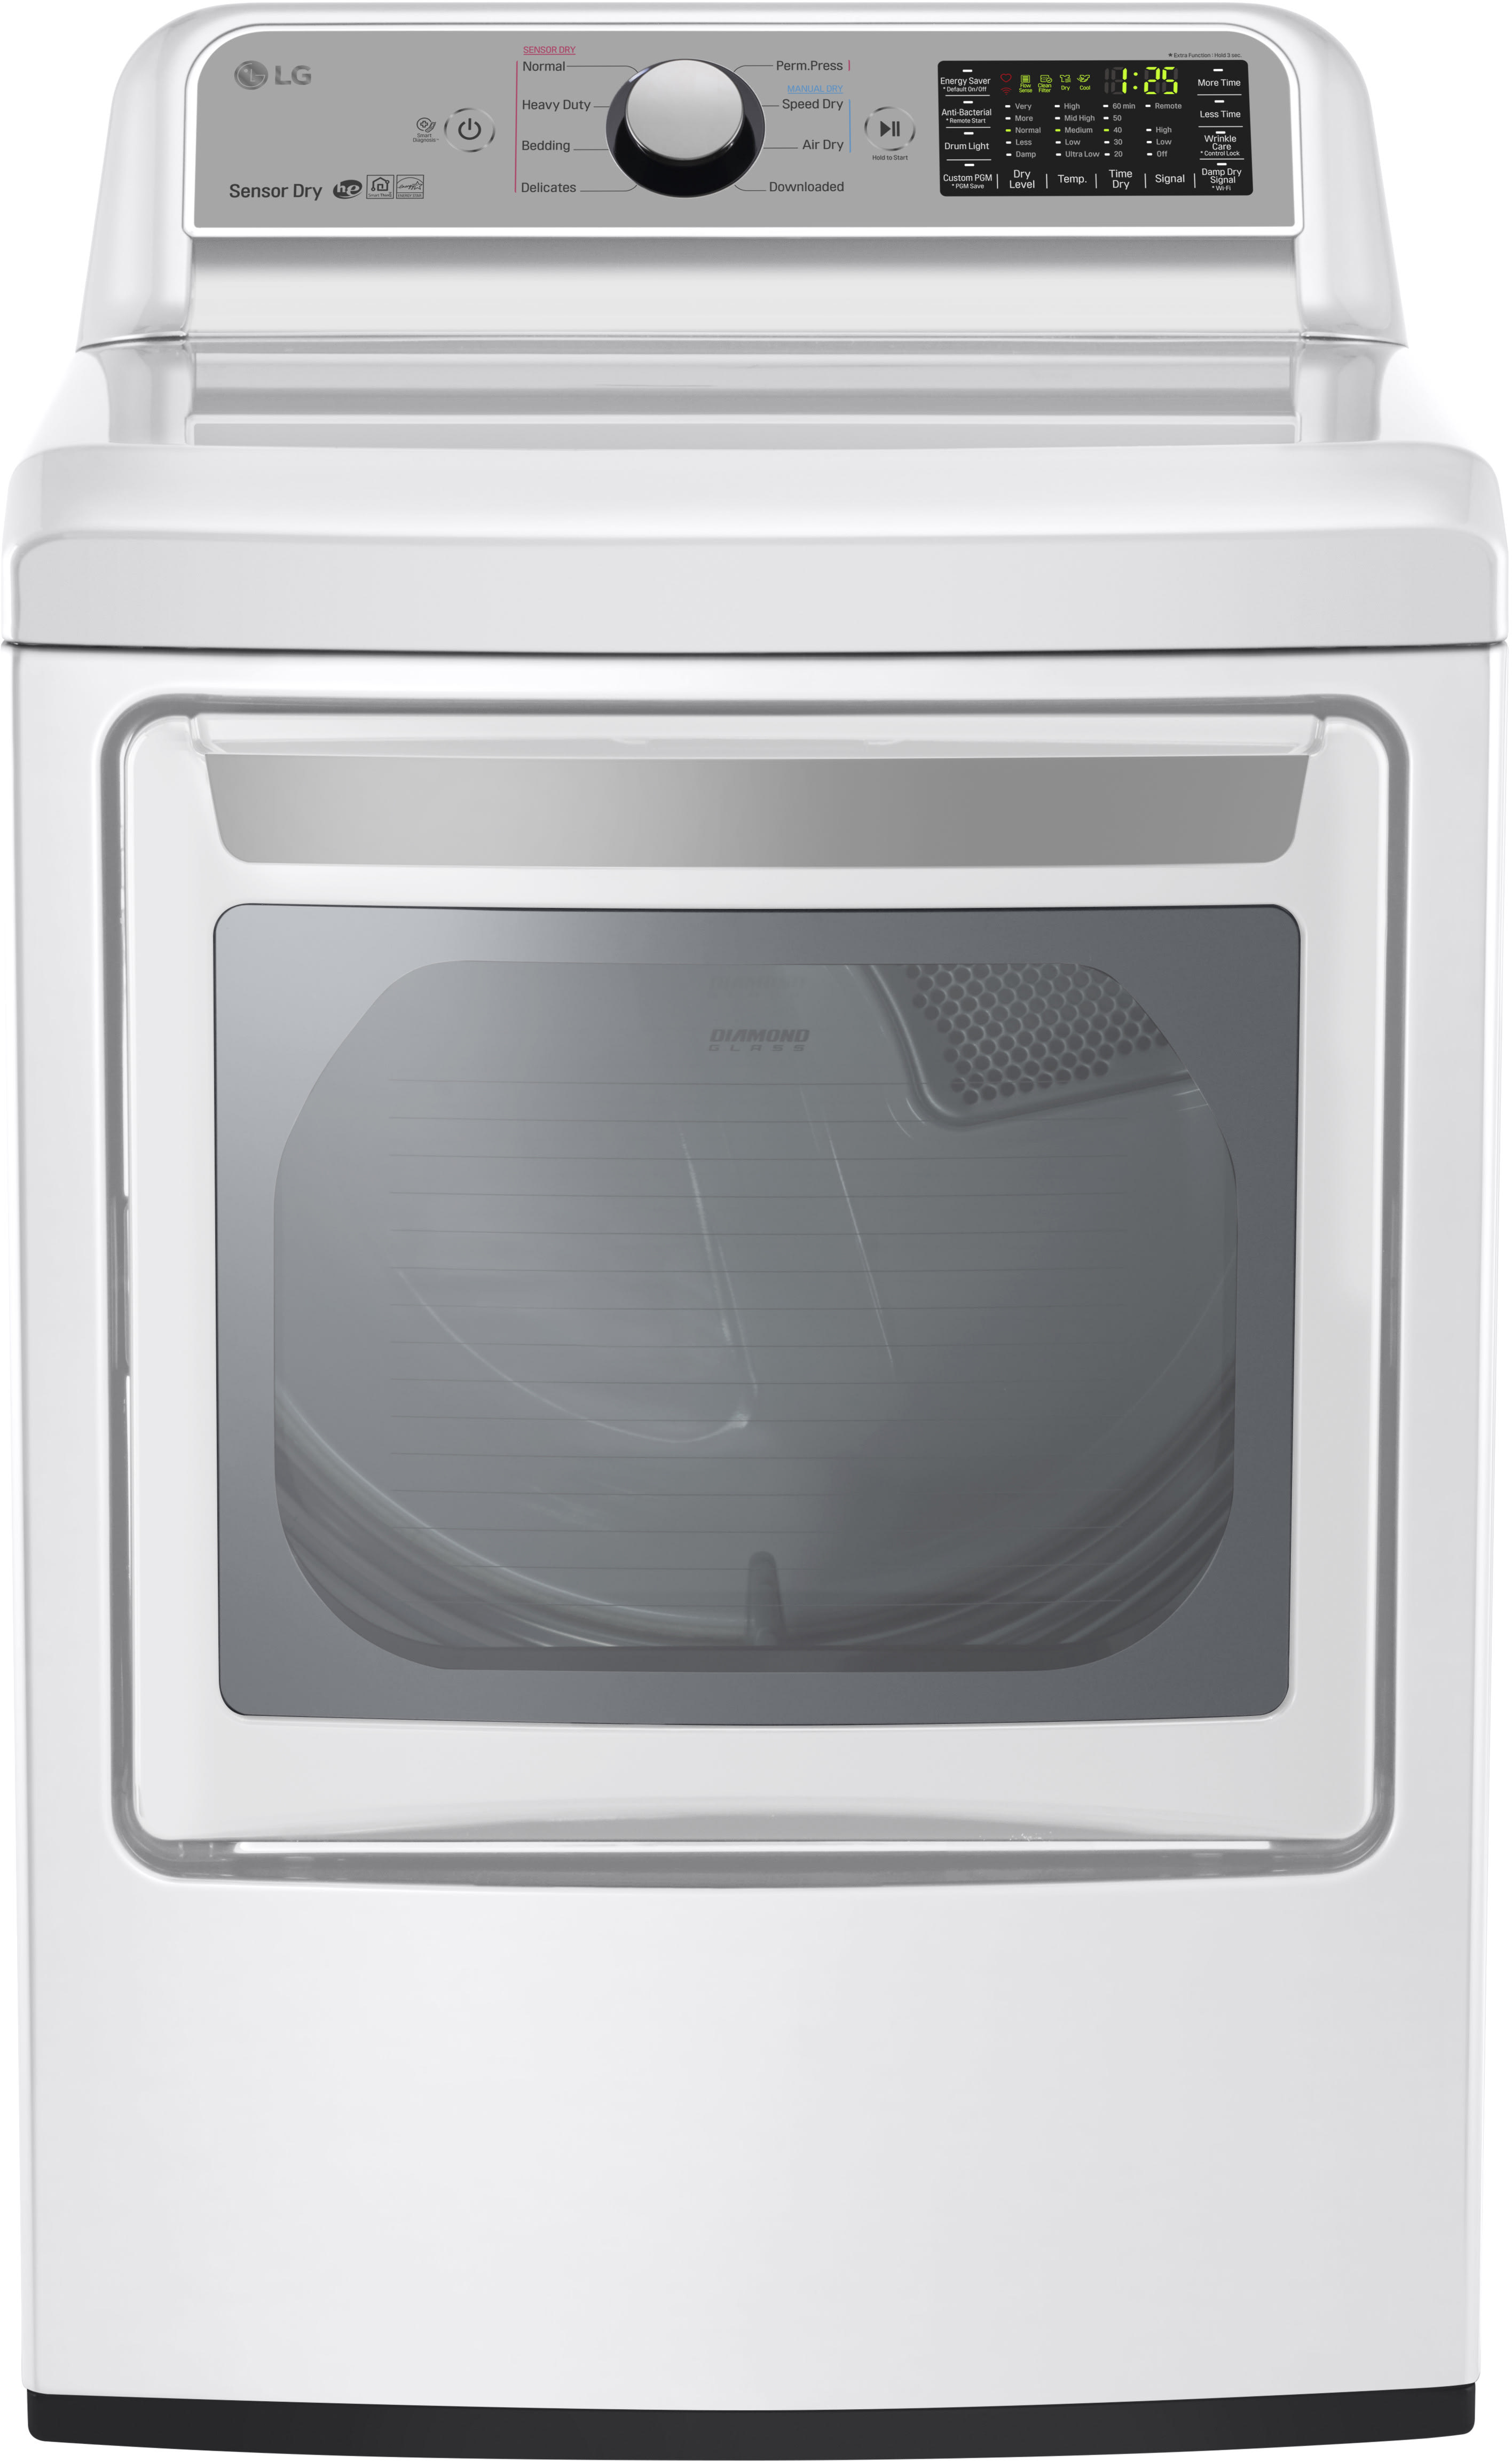 Lg Wt7200cw 27 Inch Top Load Washer With Wi Fi